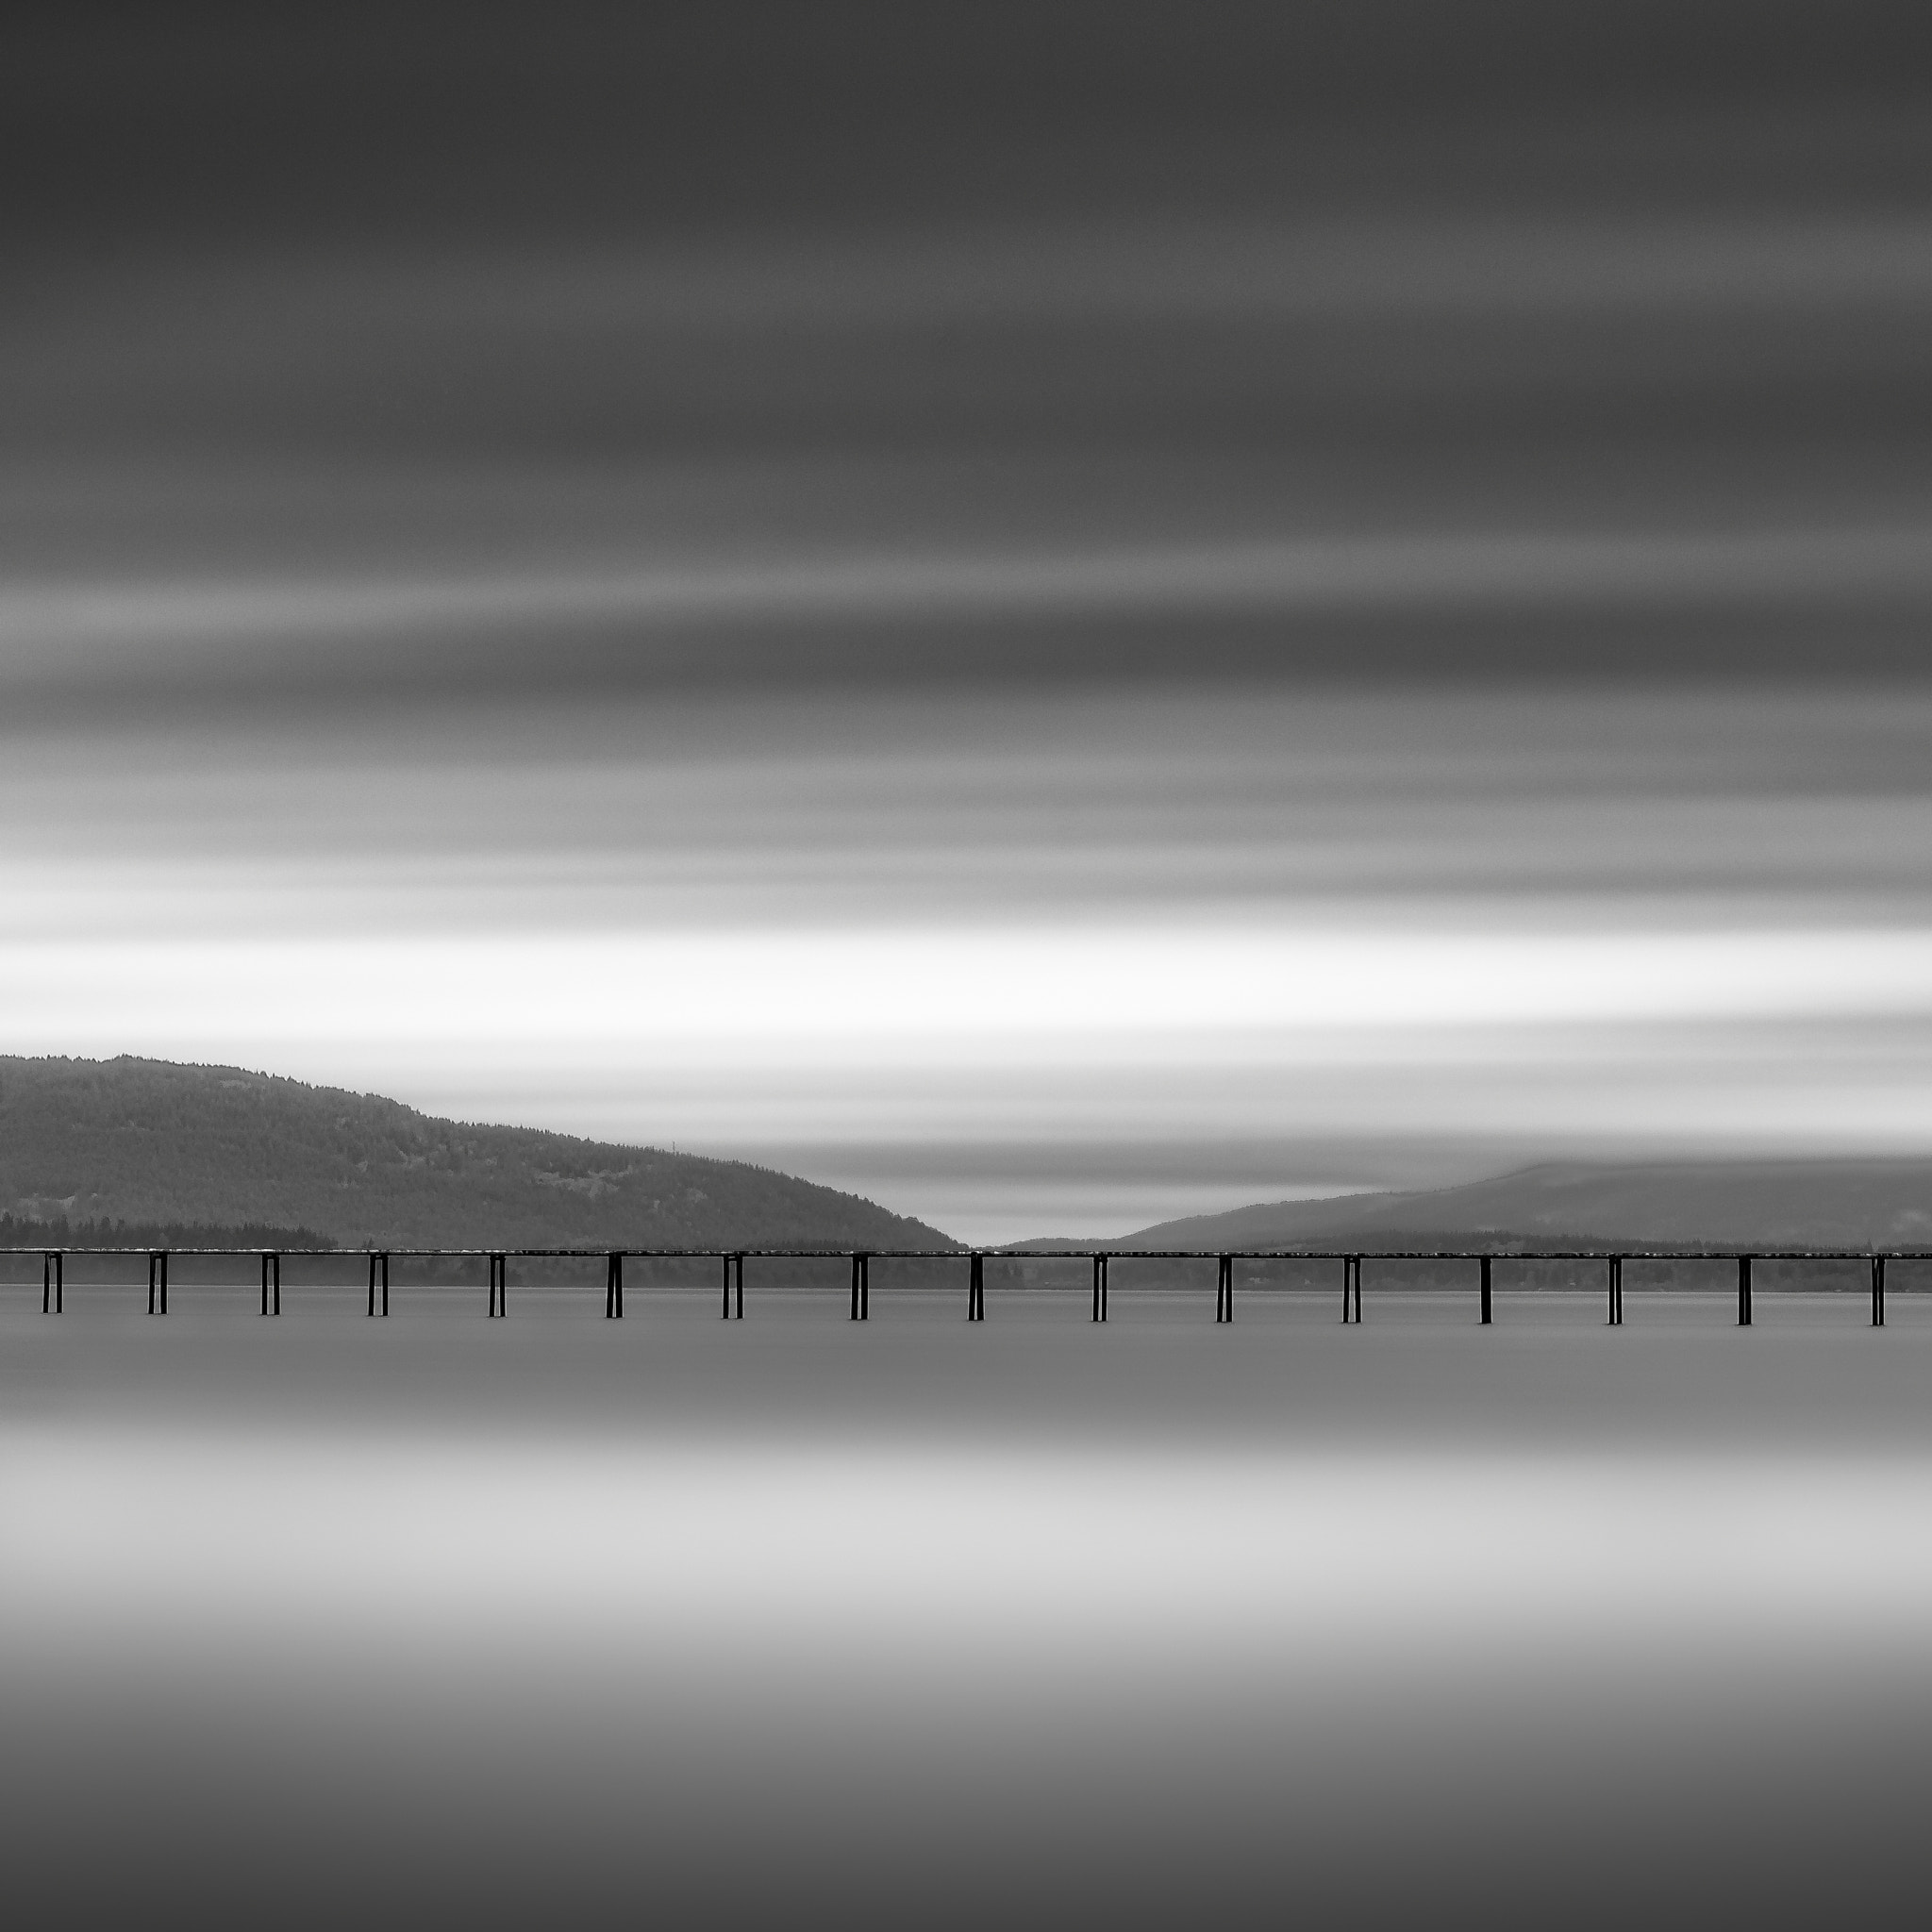 Photograph Infinite Lines by Michael  Salmela on 500px